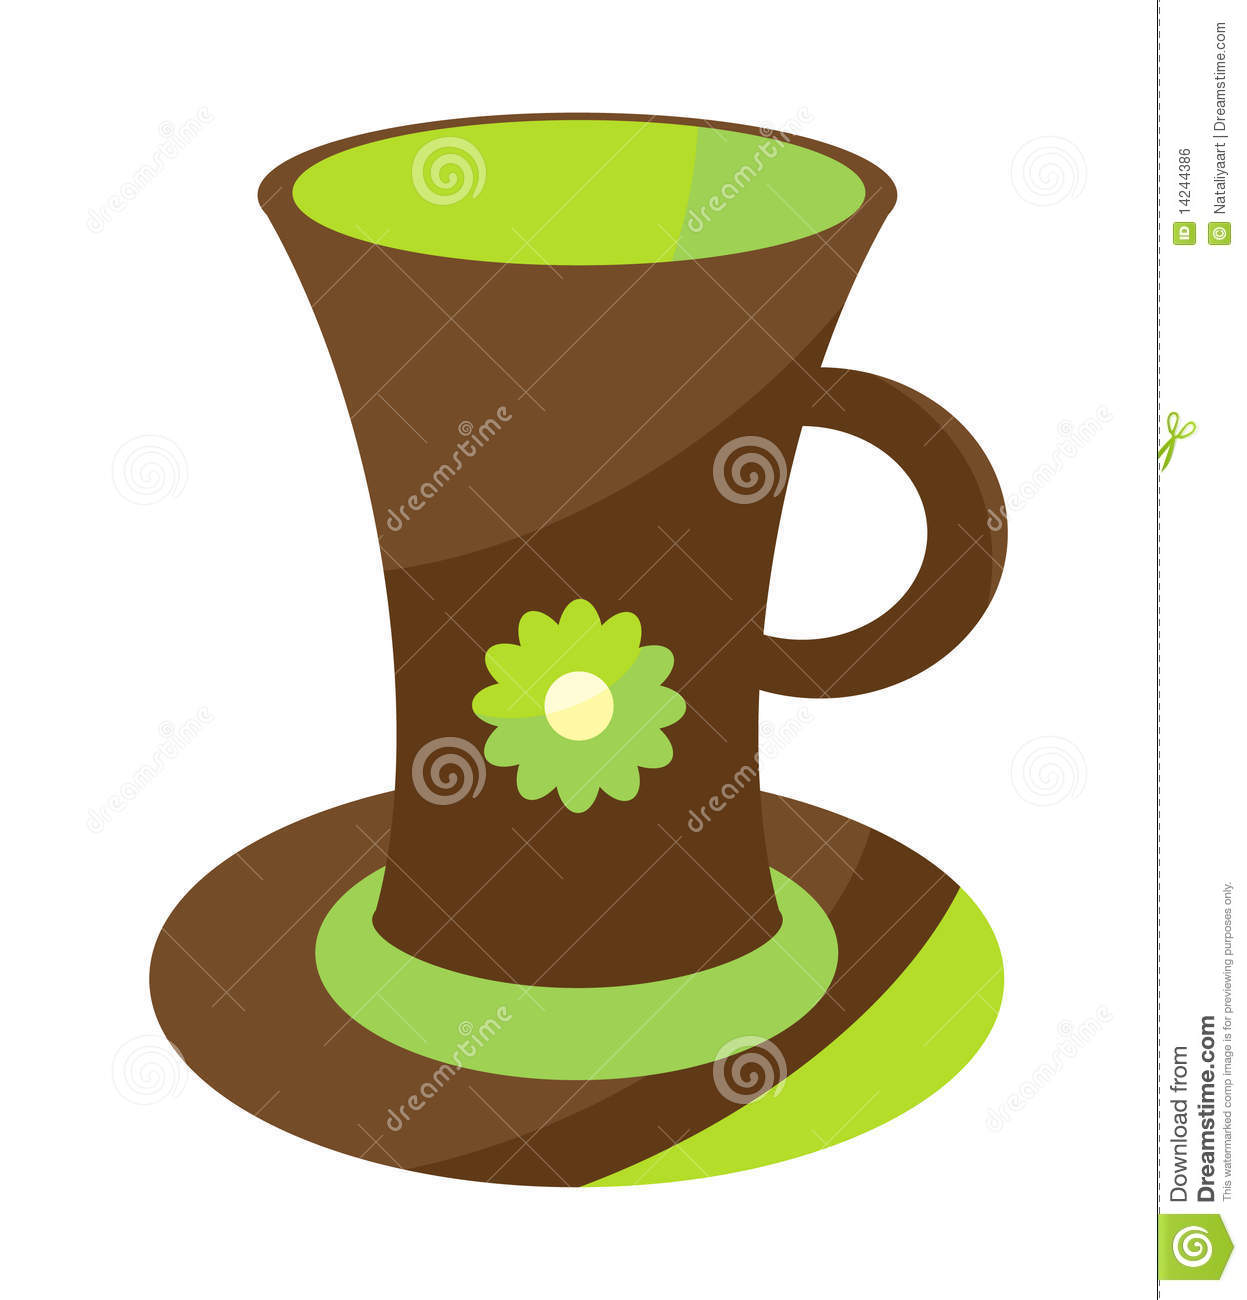 Cute Coffee Cup Royalty Free Stock Image Image 14244386